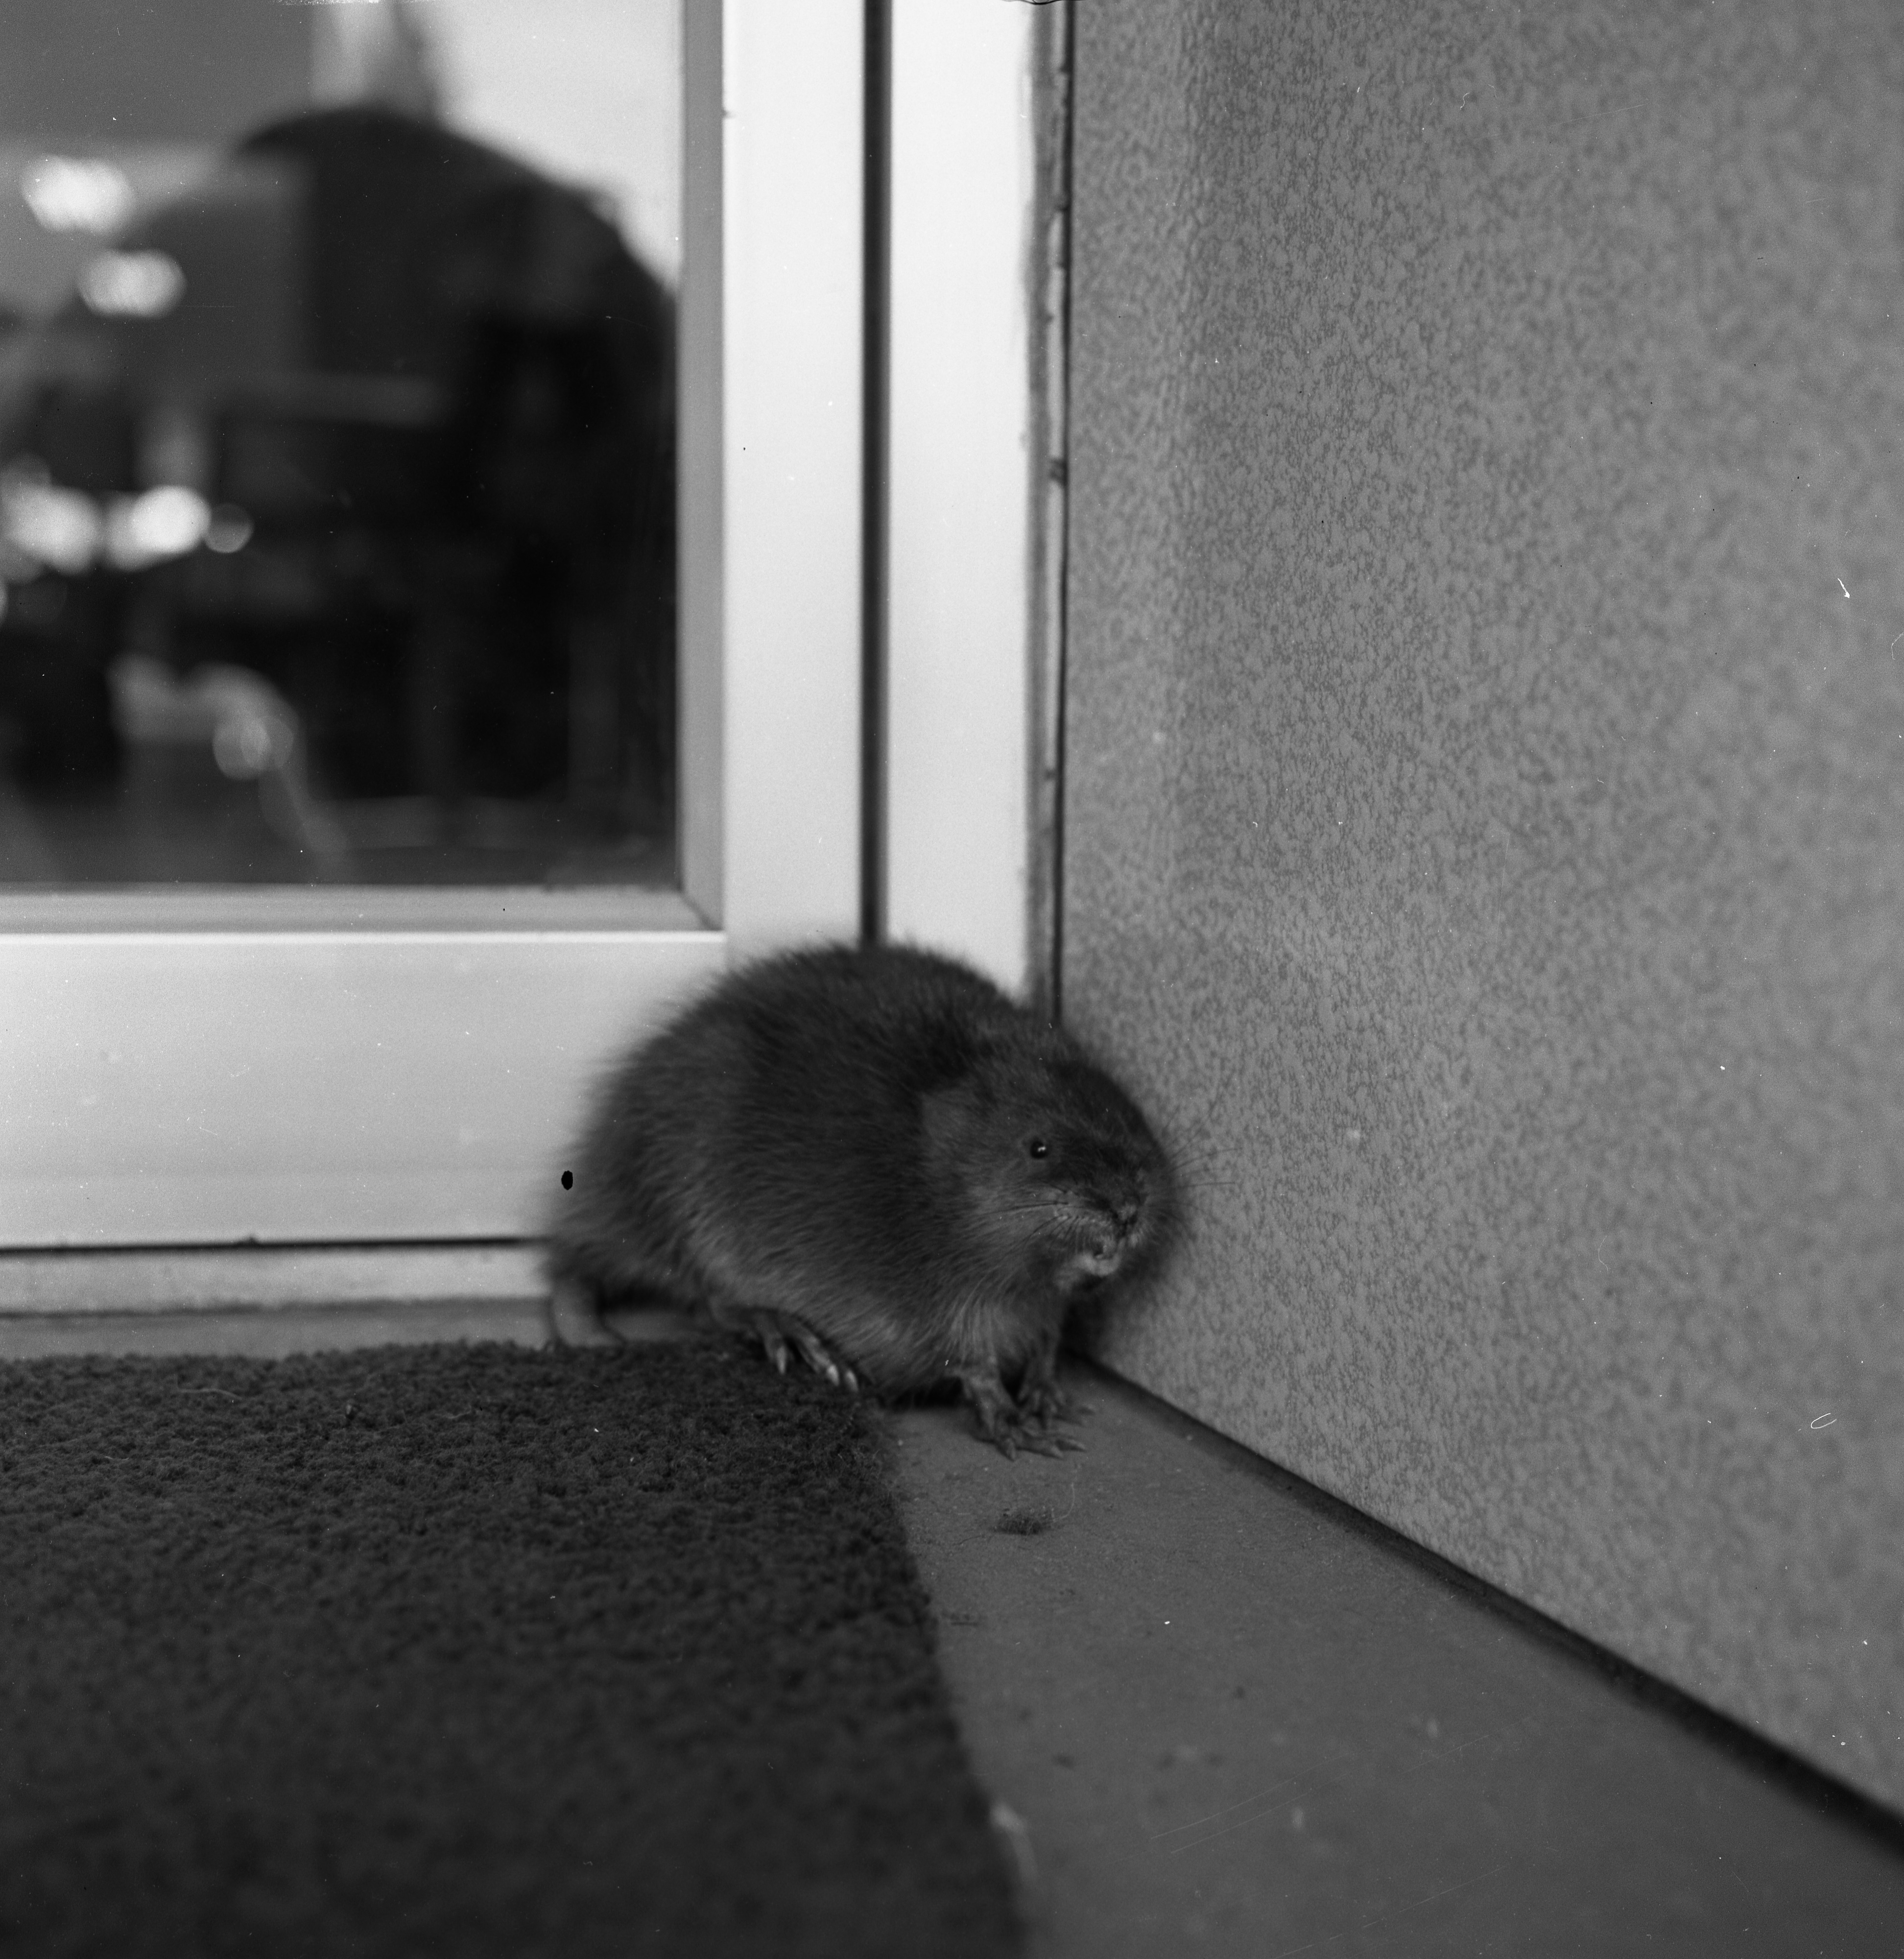 Muskrat Found at Doorway of Mast Shoe Store on Liberty St. Wakes Up, March 1964 image